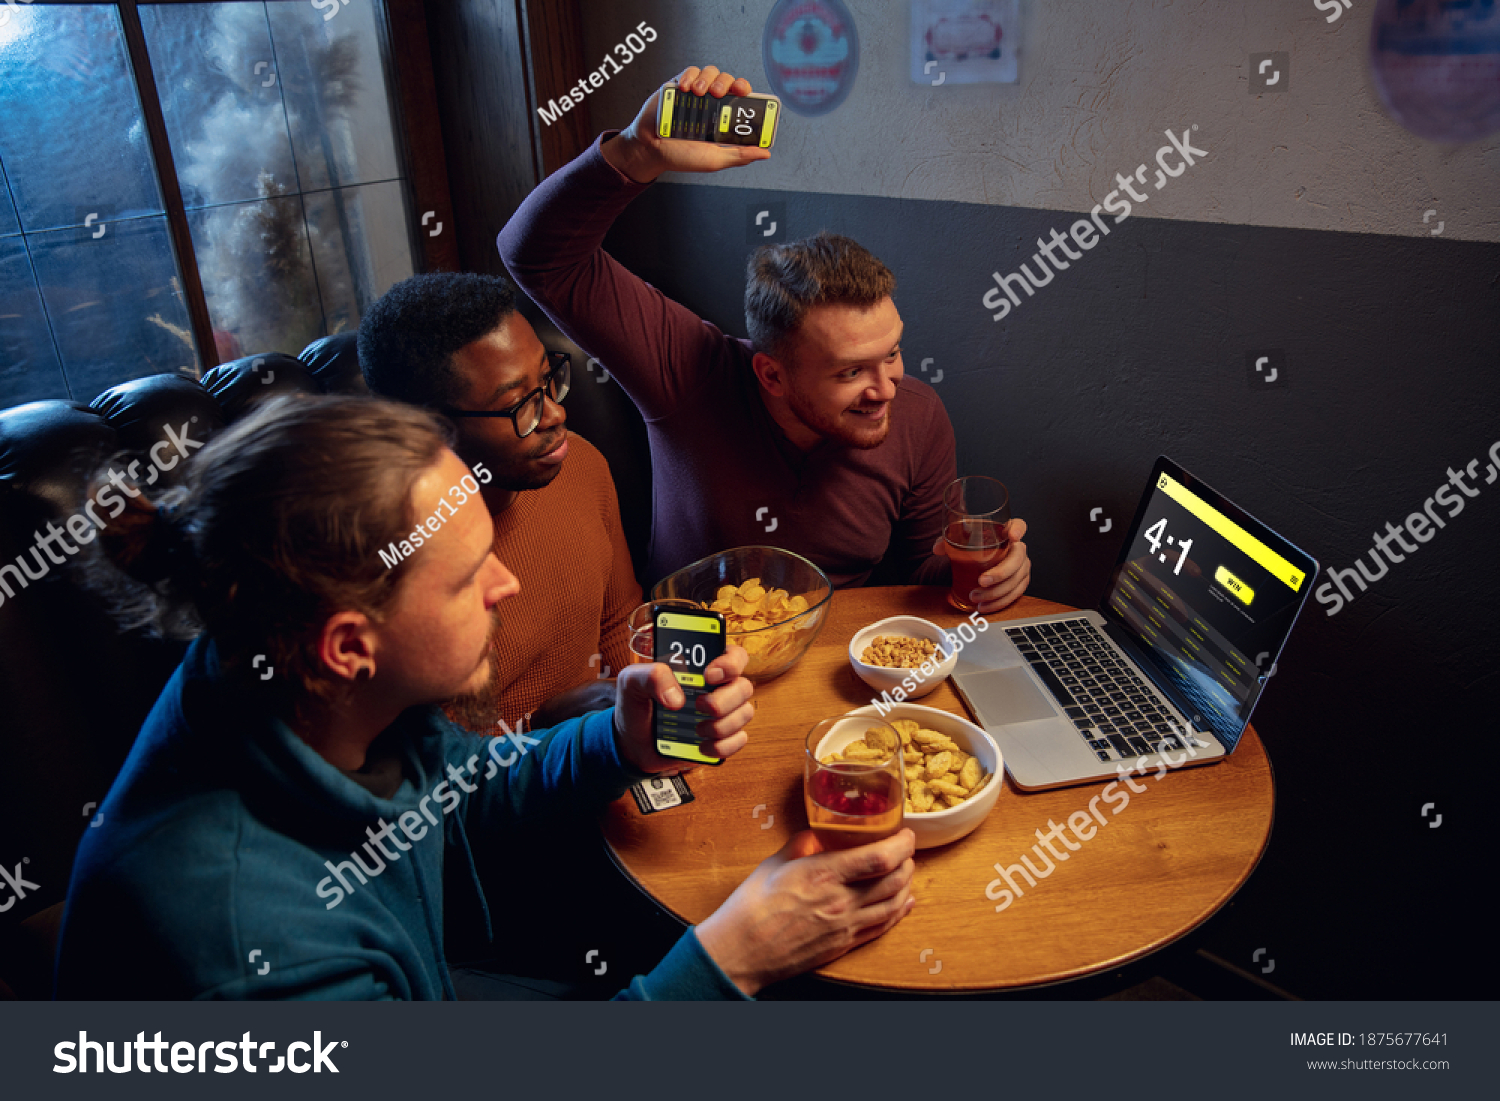 Analyzing. Excited fans in bar with beer and mobile app for betting, score on their devices. Screen with match results, emotional friends cheering. Gambling, sport, finance, modern techn concept. #1875677641